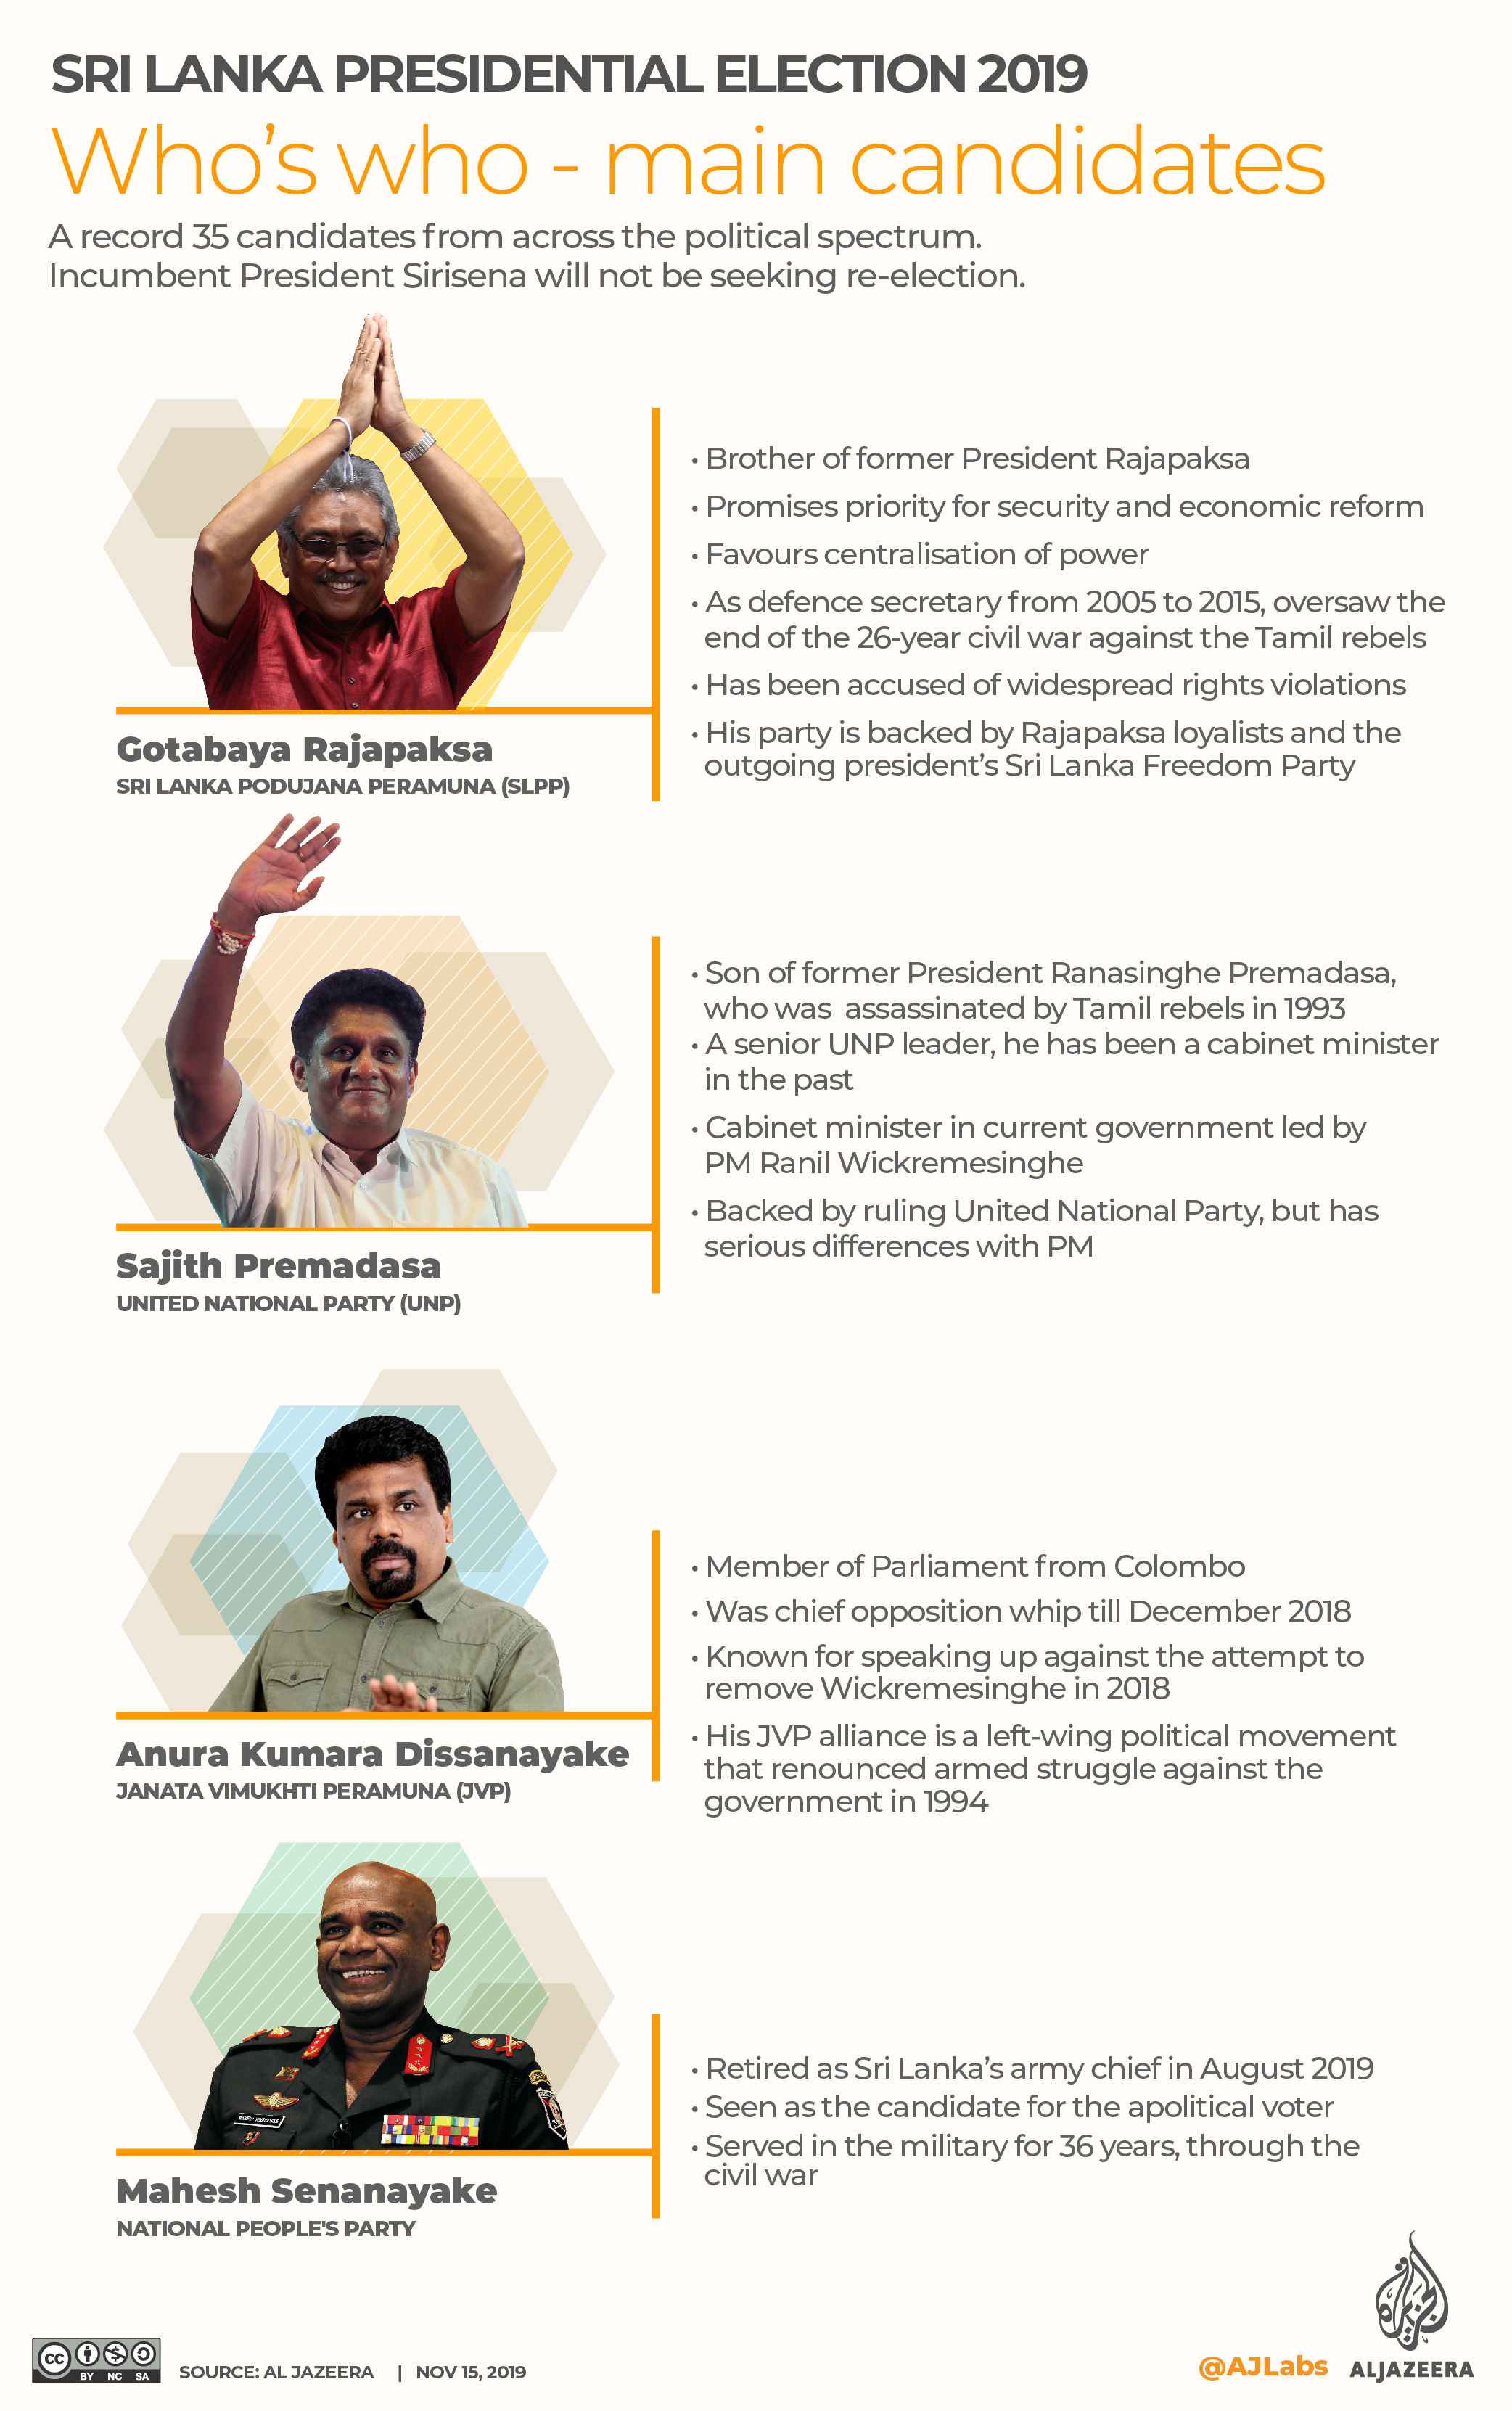 INTERACTIVE: Sri Lanka's Elections - Revised - Candidates